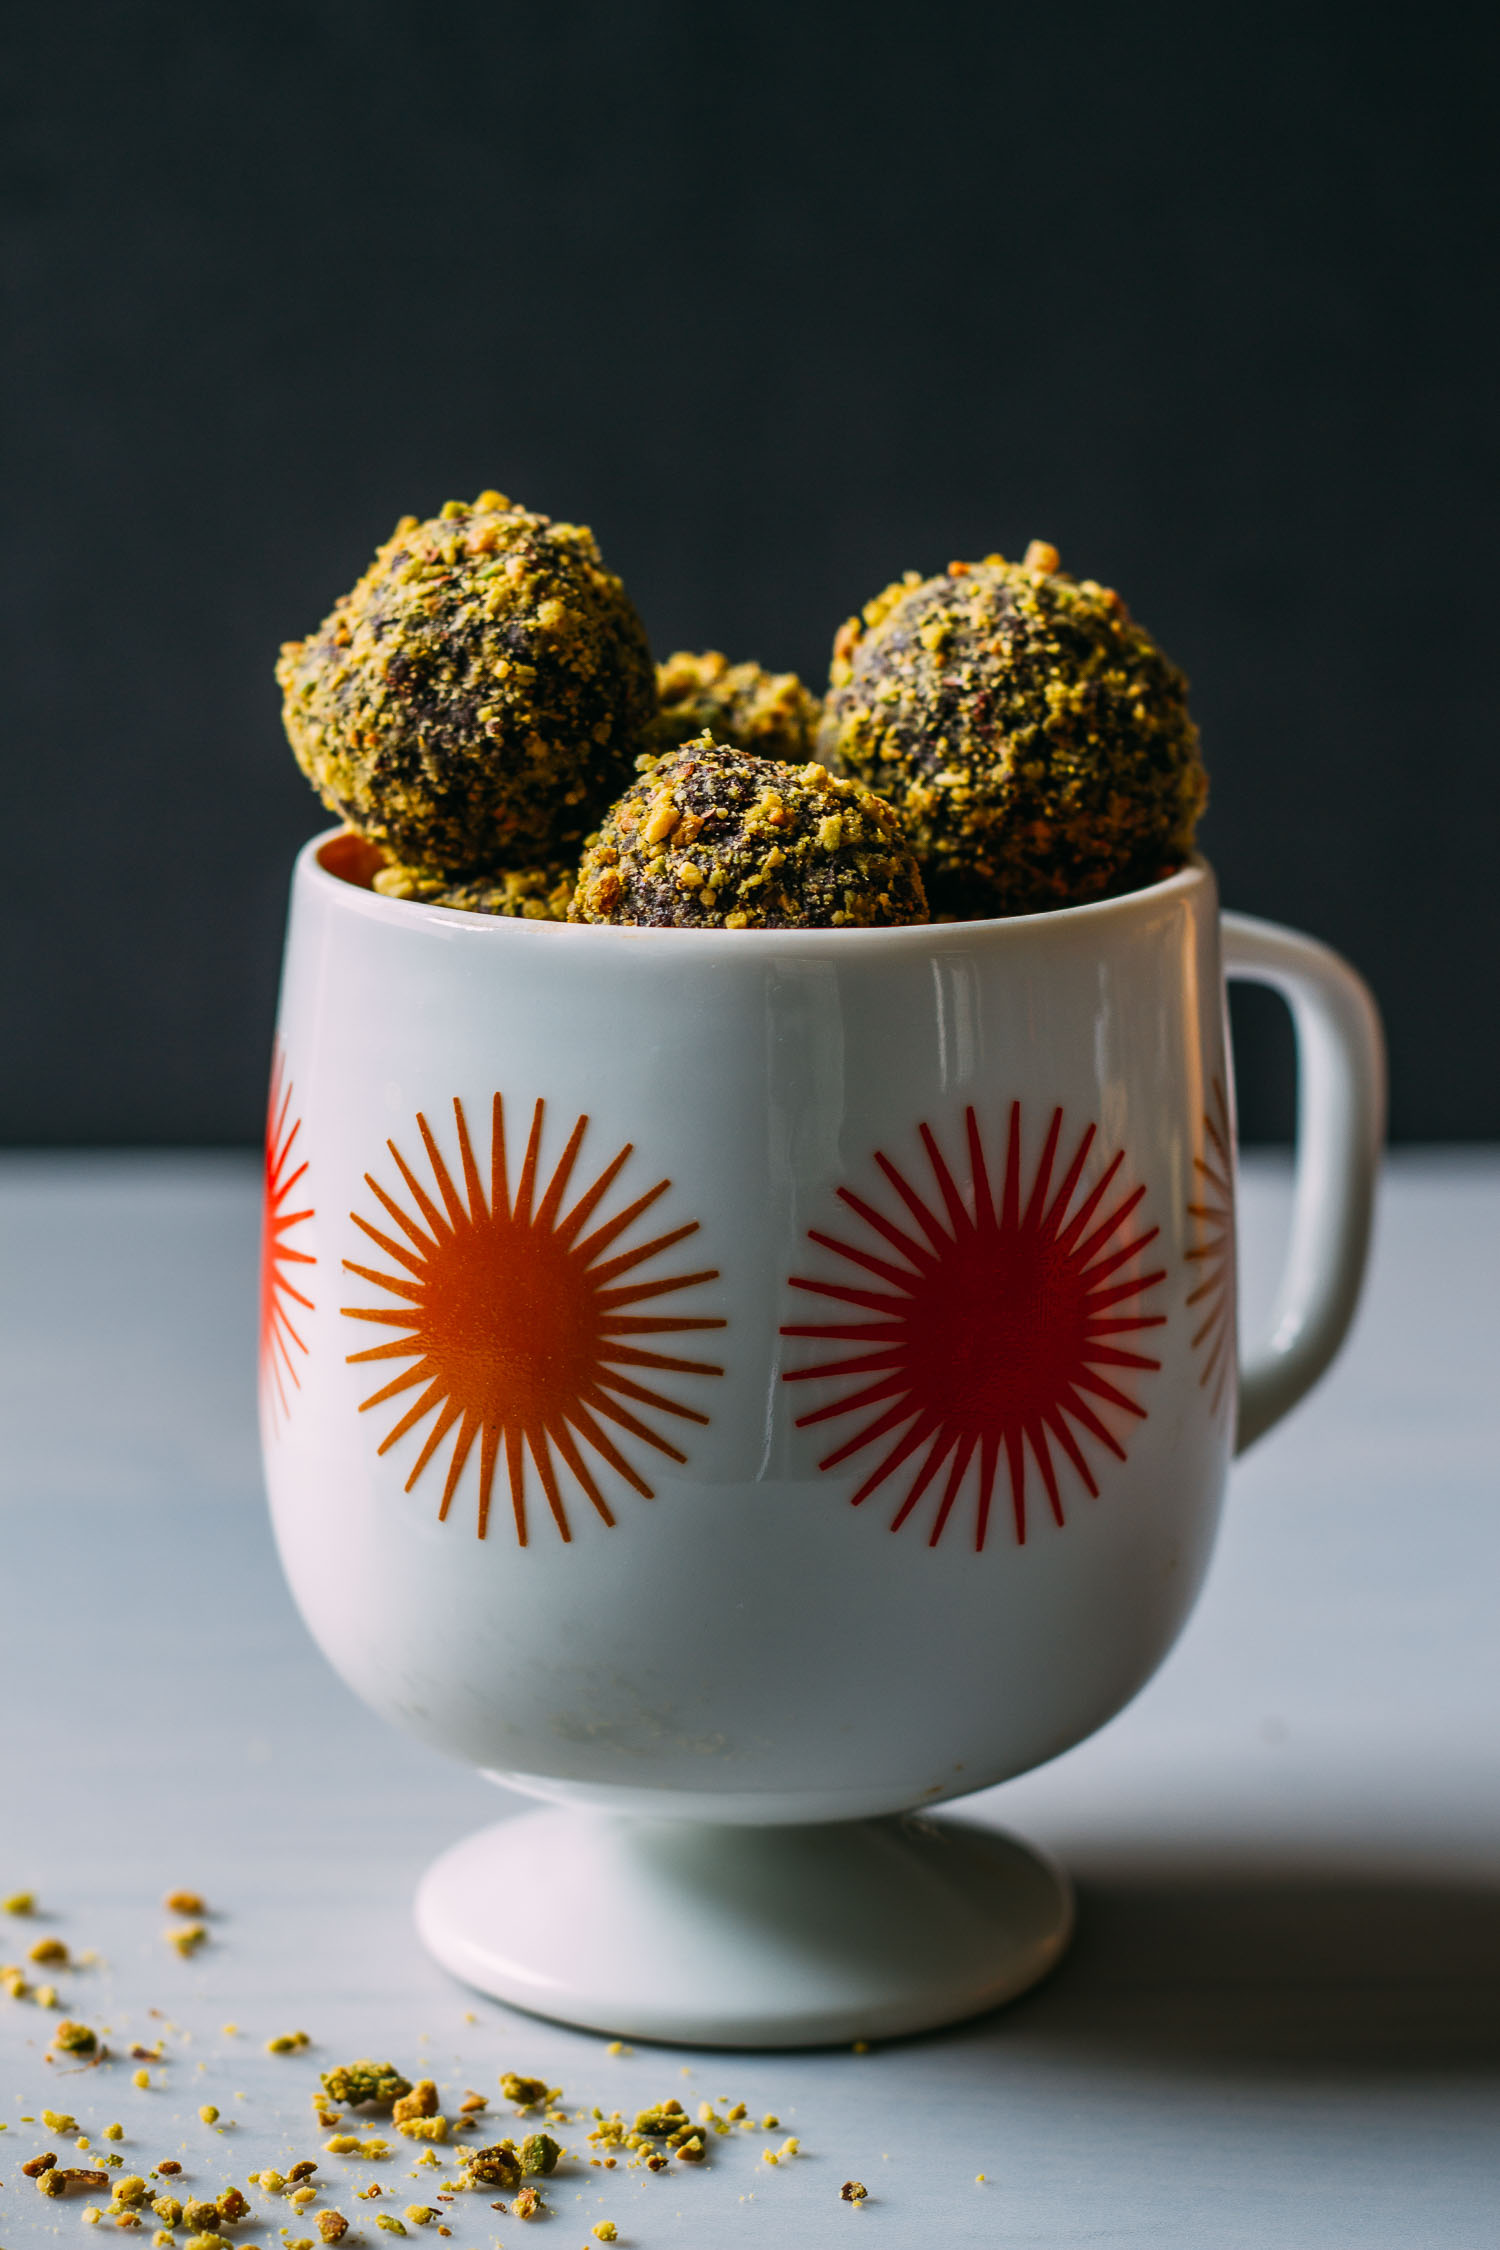 Date-Sweetened Chocolate Pistachio Bites #raw #vegan #dessert #snack #recipe